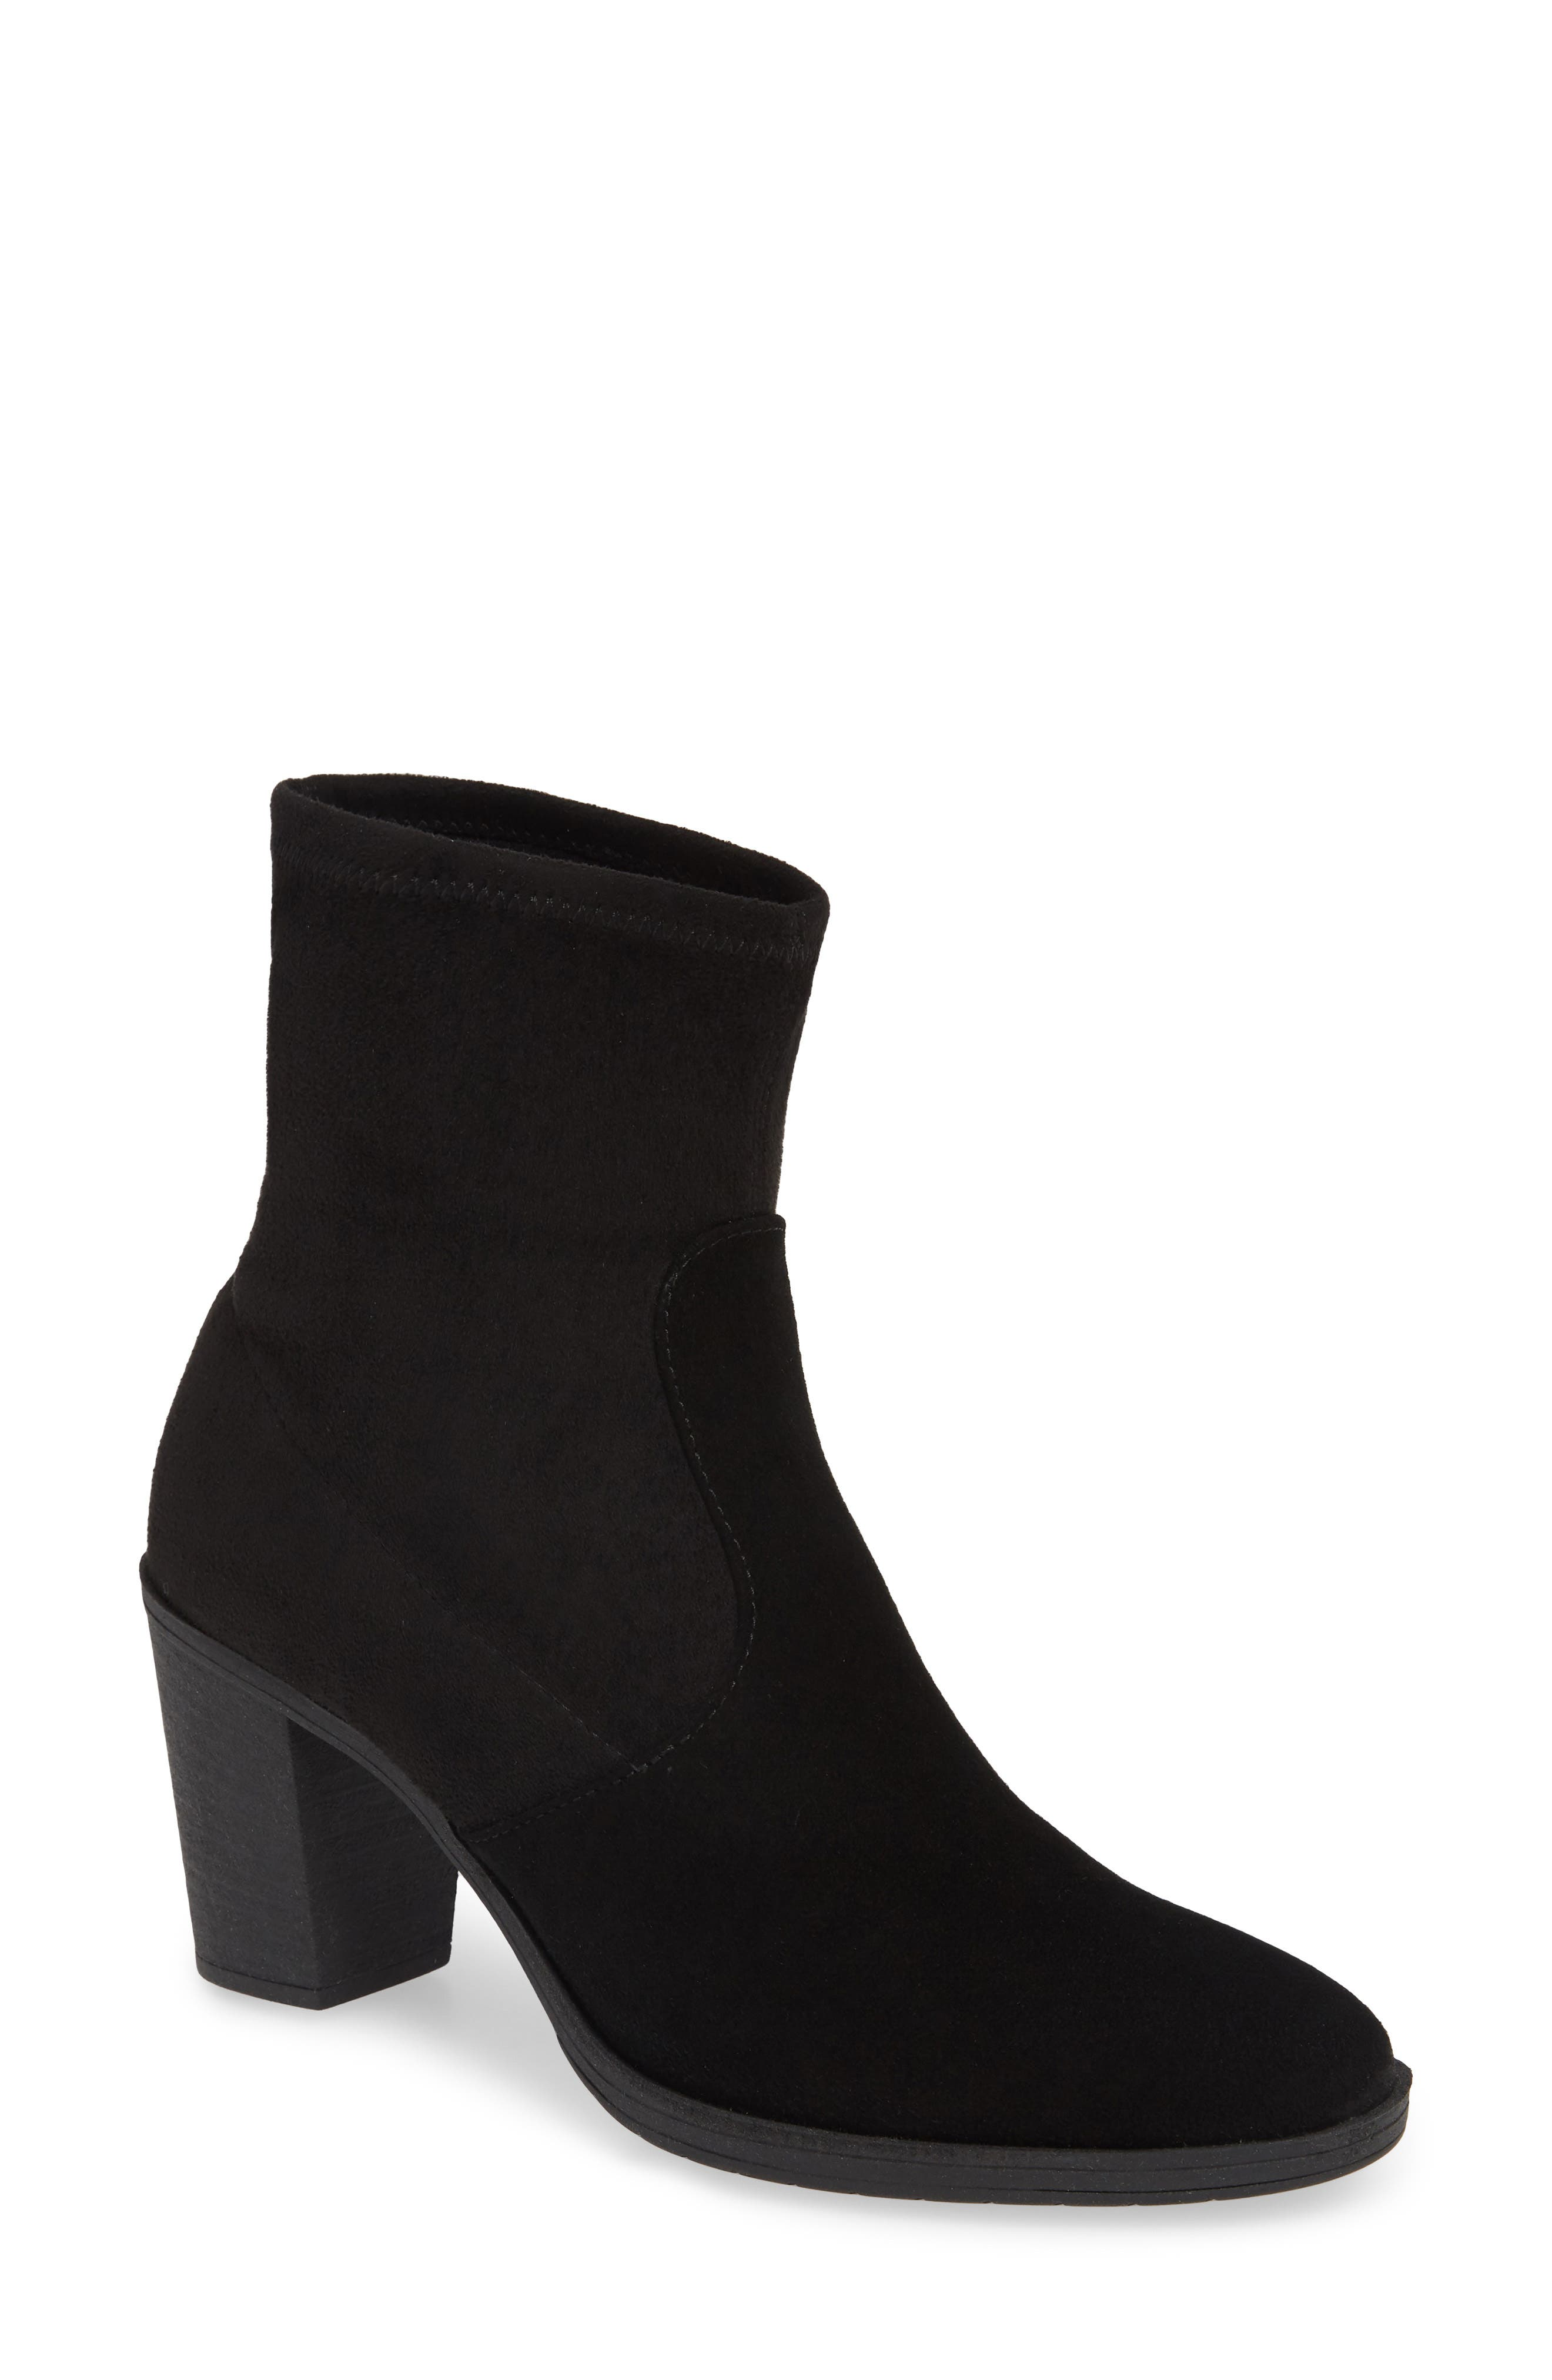 The Flexx On The Rocks Bootie- Black